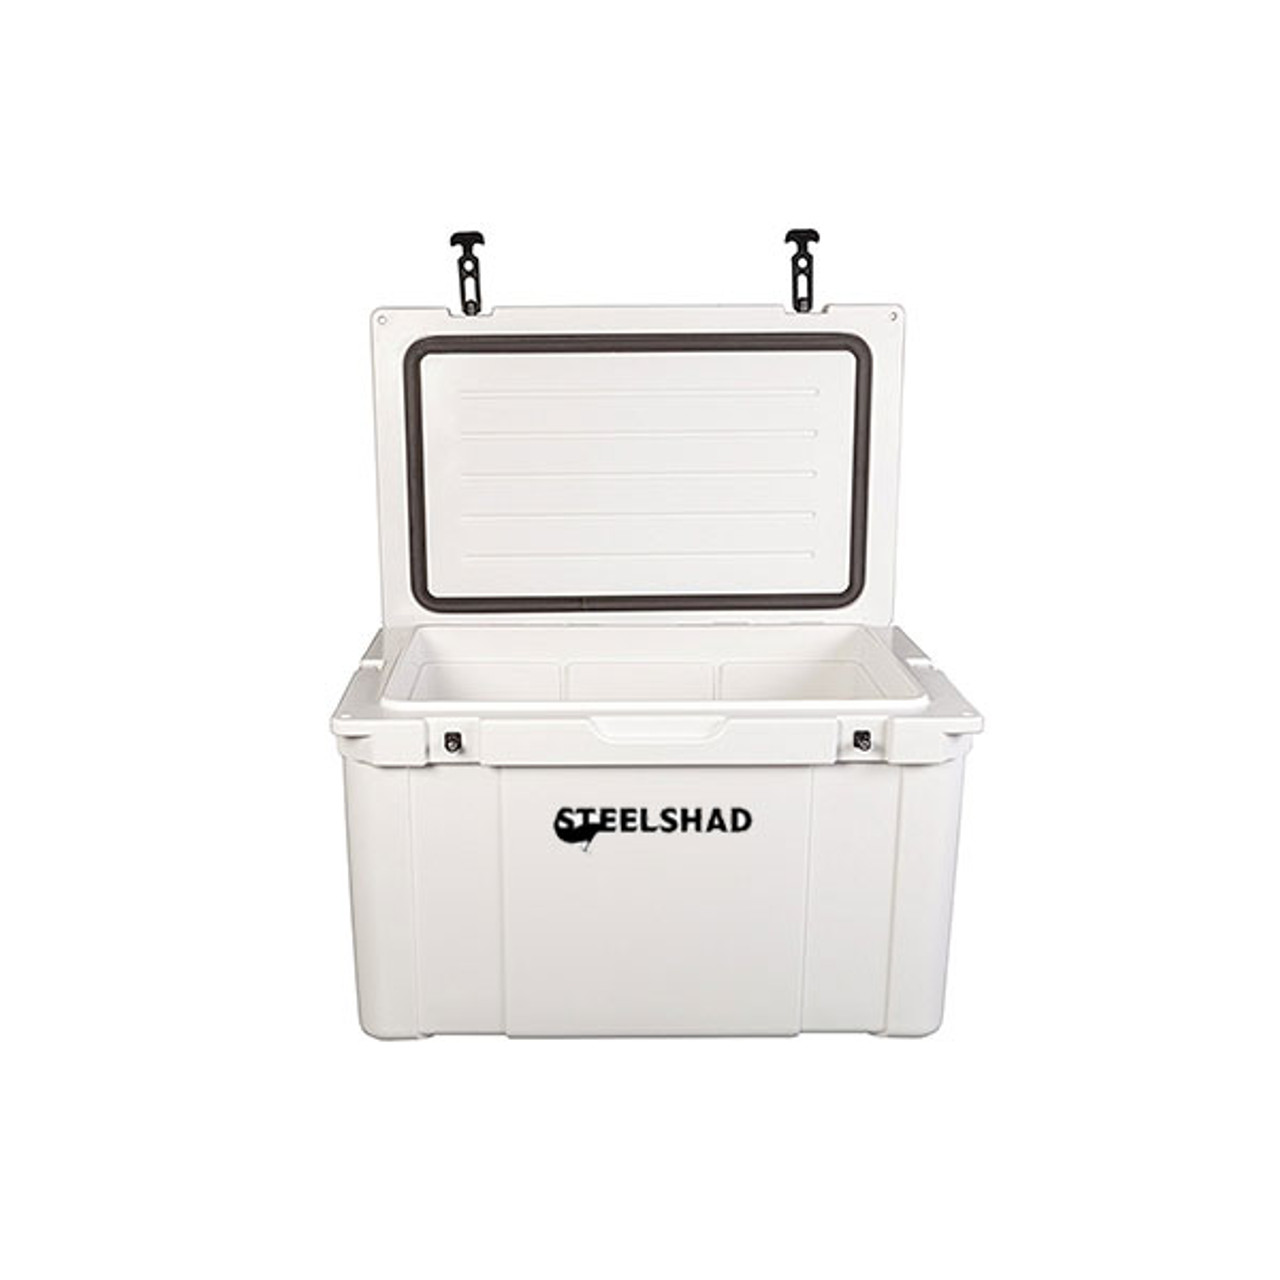 SteelShad Super Cooler - 30L